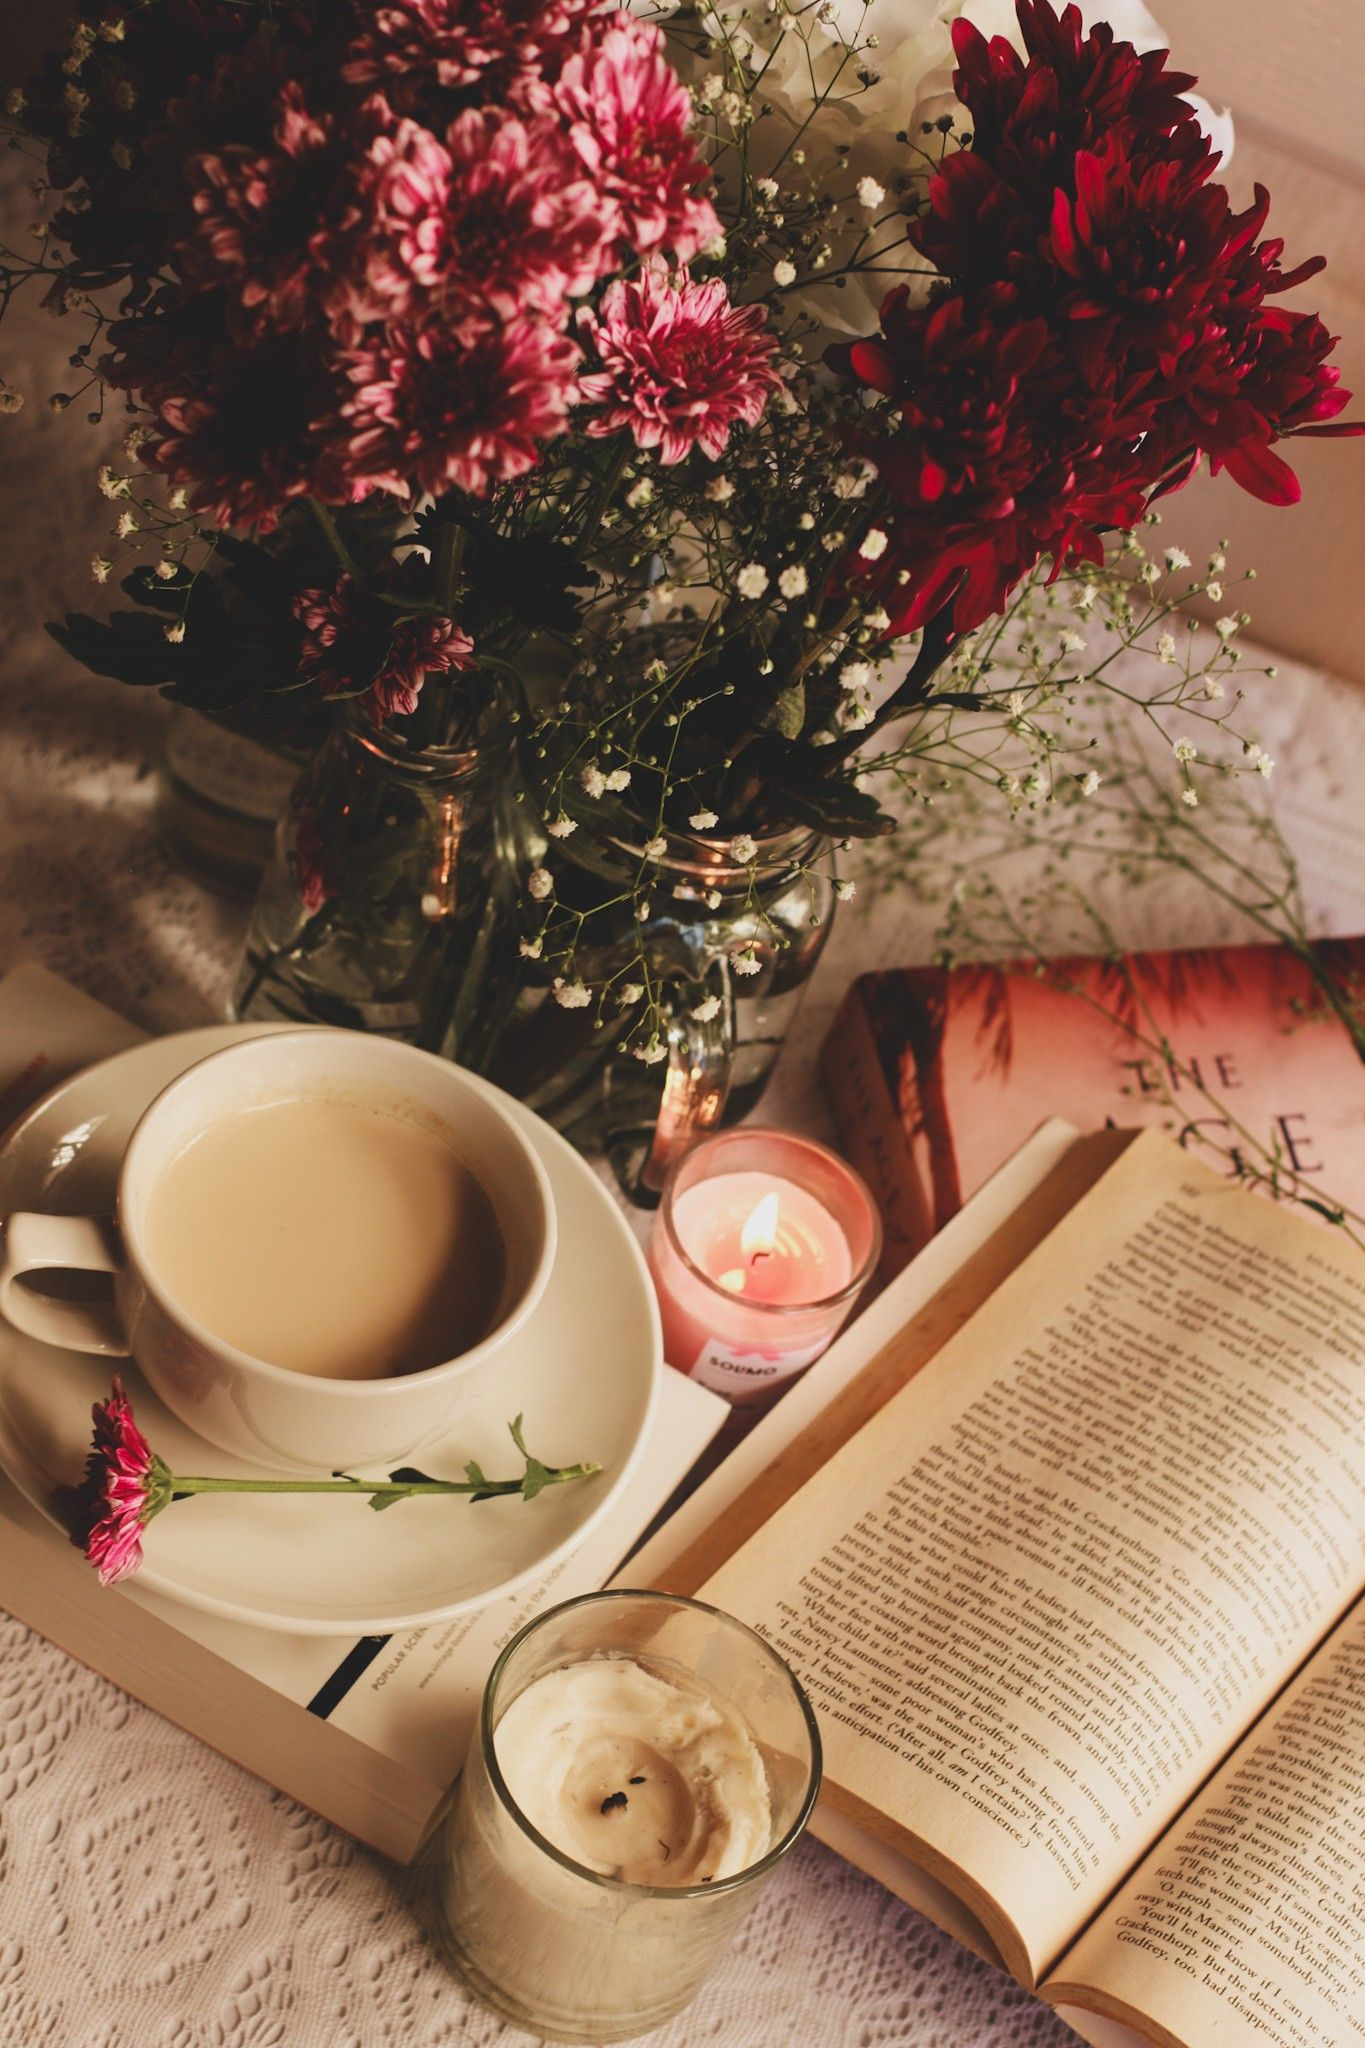 Spring Season Flowers Coffee And Books Book Flowers Coffee Photography